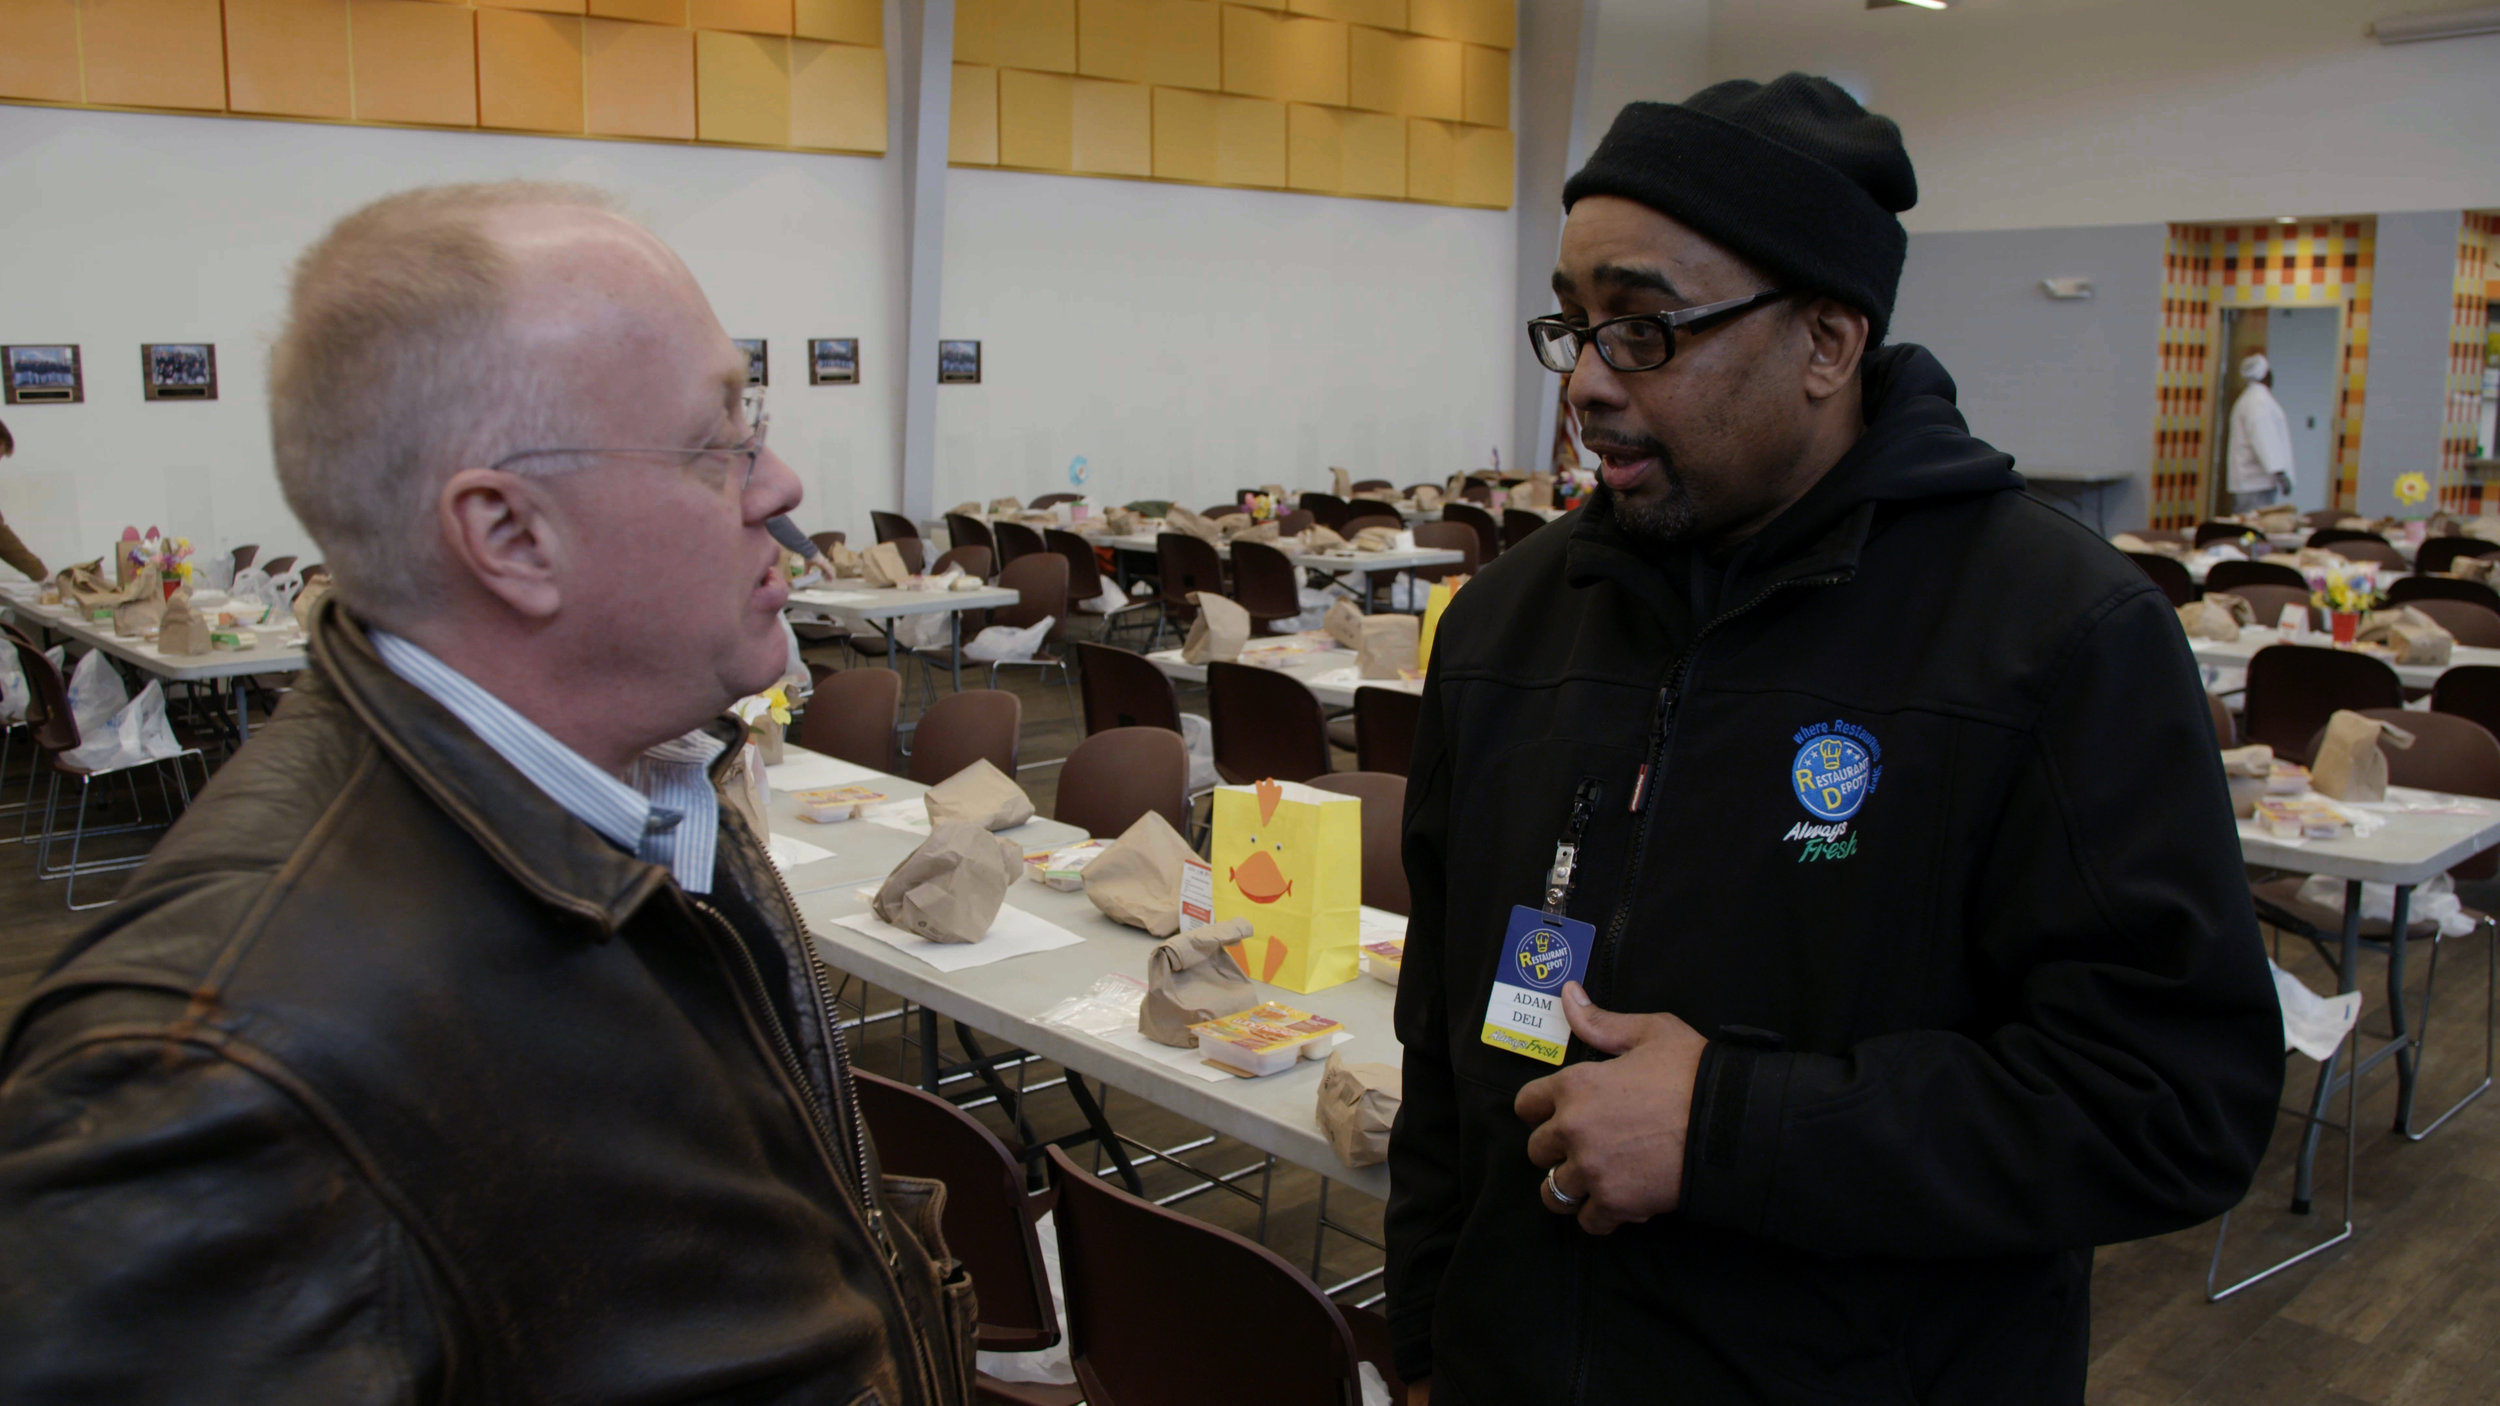 Journalist Chris Hedges with Kitchen Volunteer Delton Adams_The Corporate Coup d'État © White Pine Pictures 2018.jpg